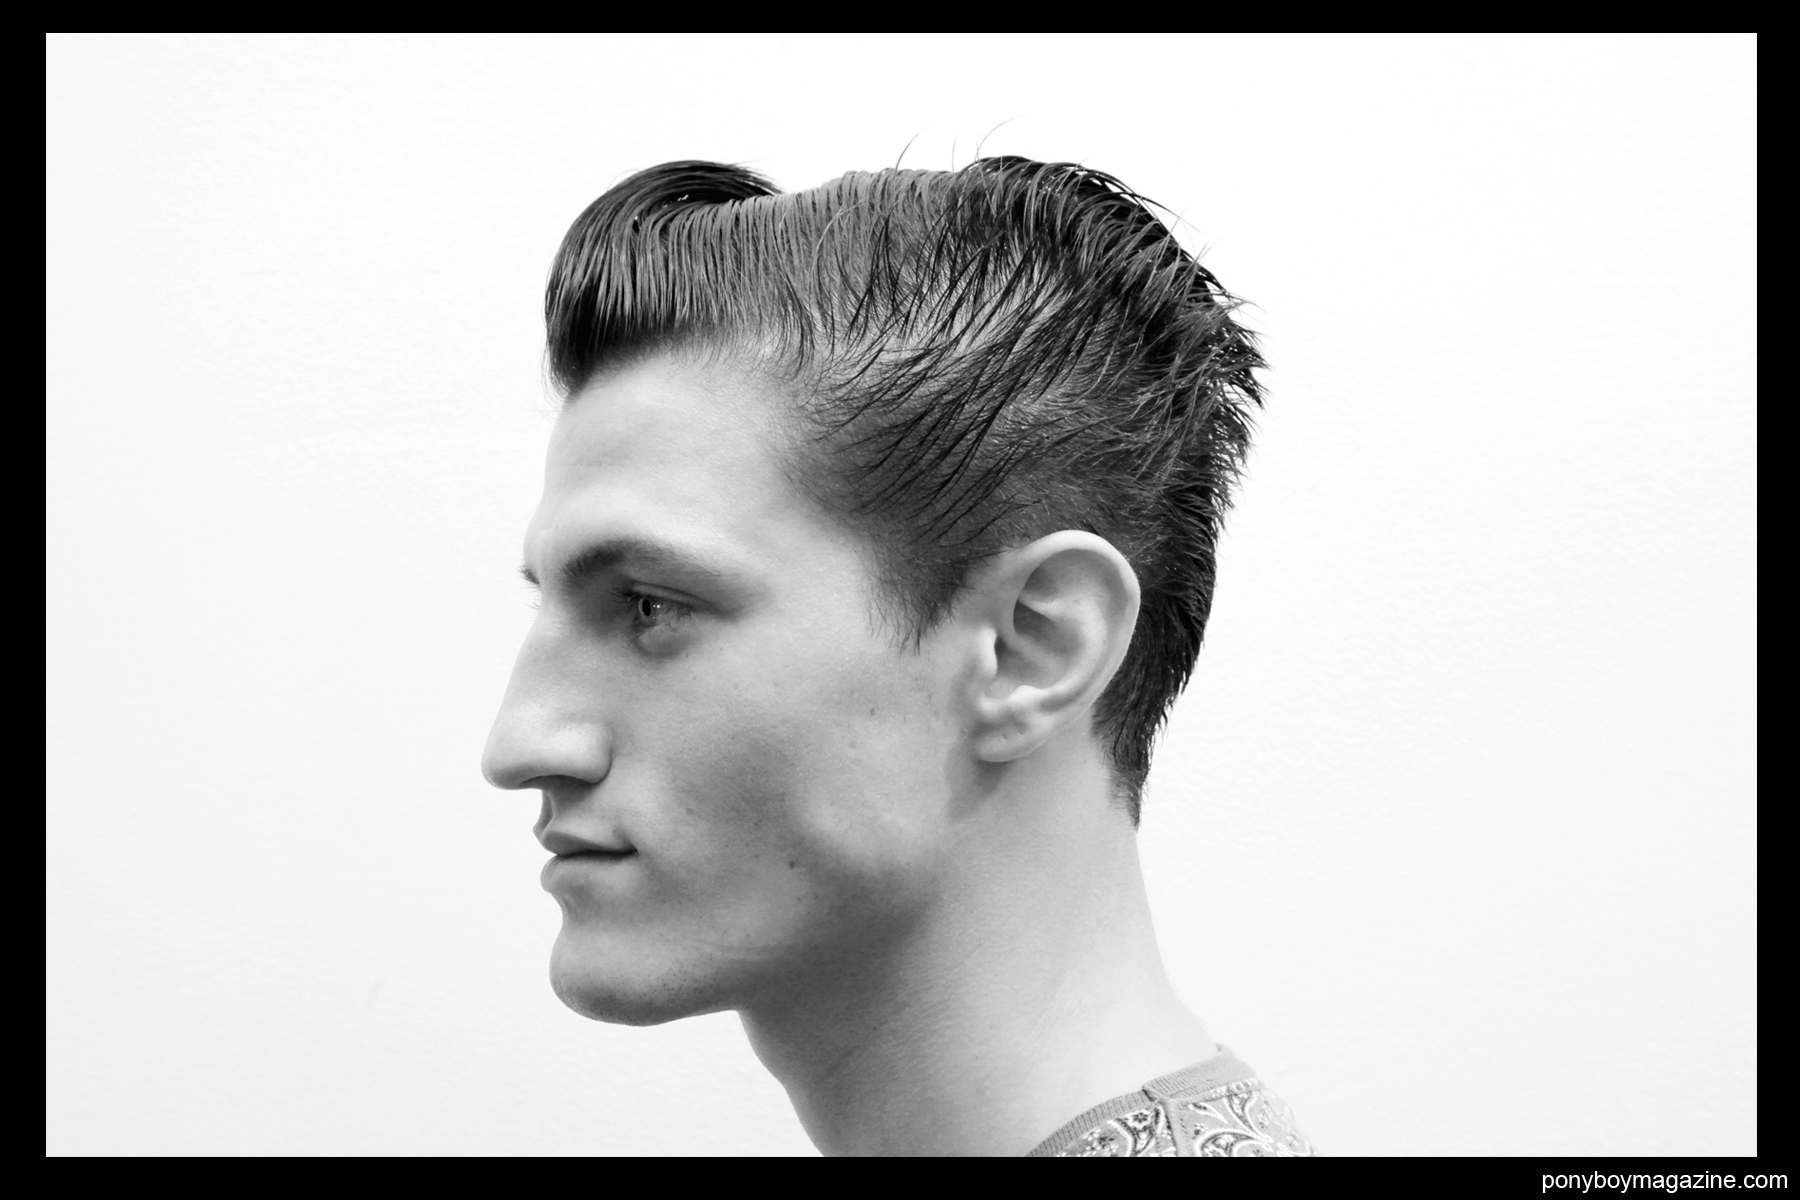 Profile of male model backstage at Patrik Ervell SS 2014, for Ponyboy Magazine, photographed by Alexander Thompson.